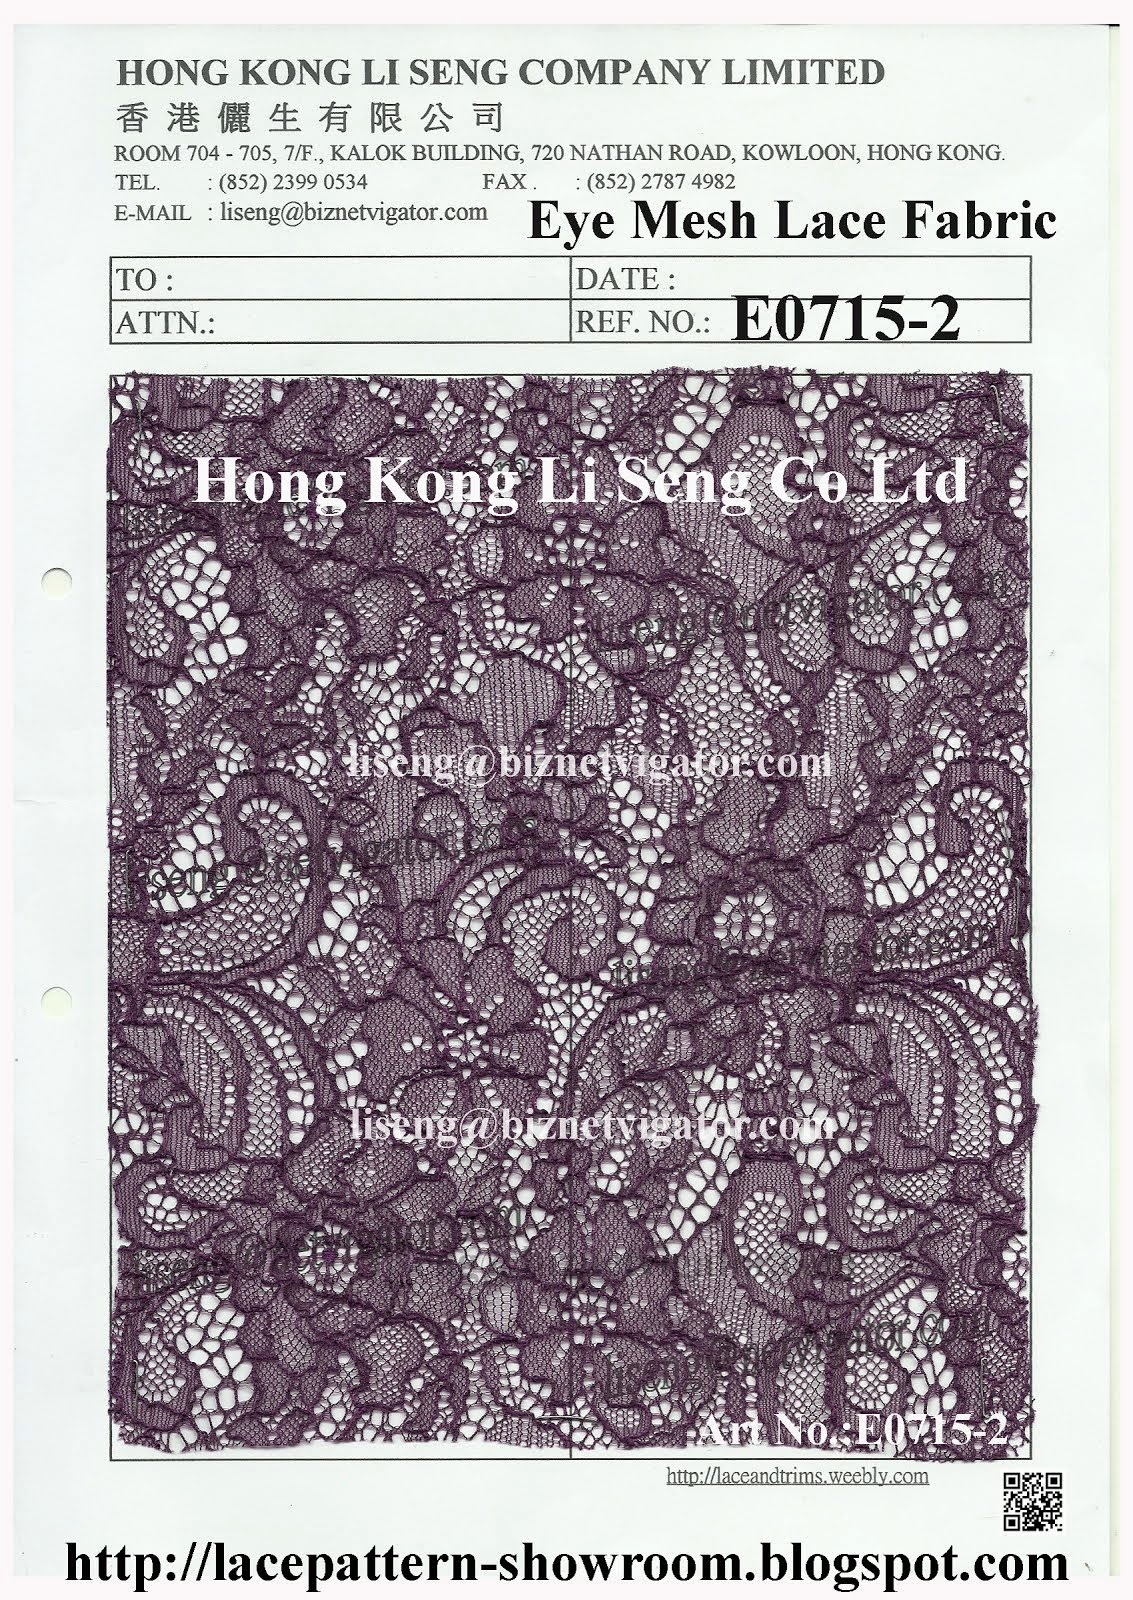 Introduce the Good Lace Trims Lace Fabric Manufacturer Wholesaler Supplier Hong Kong Li Seng Co Ltd